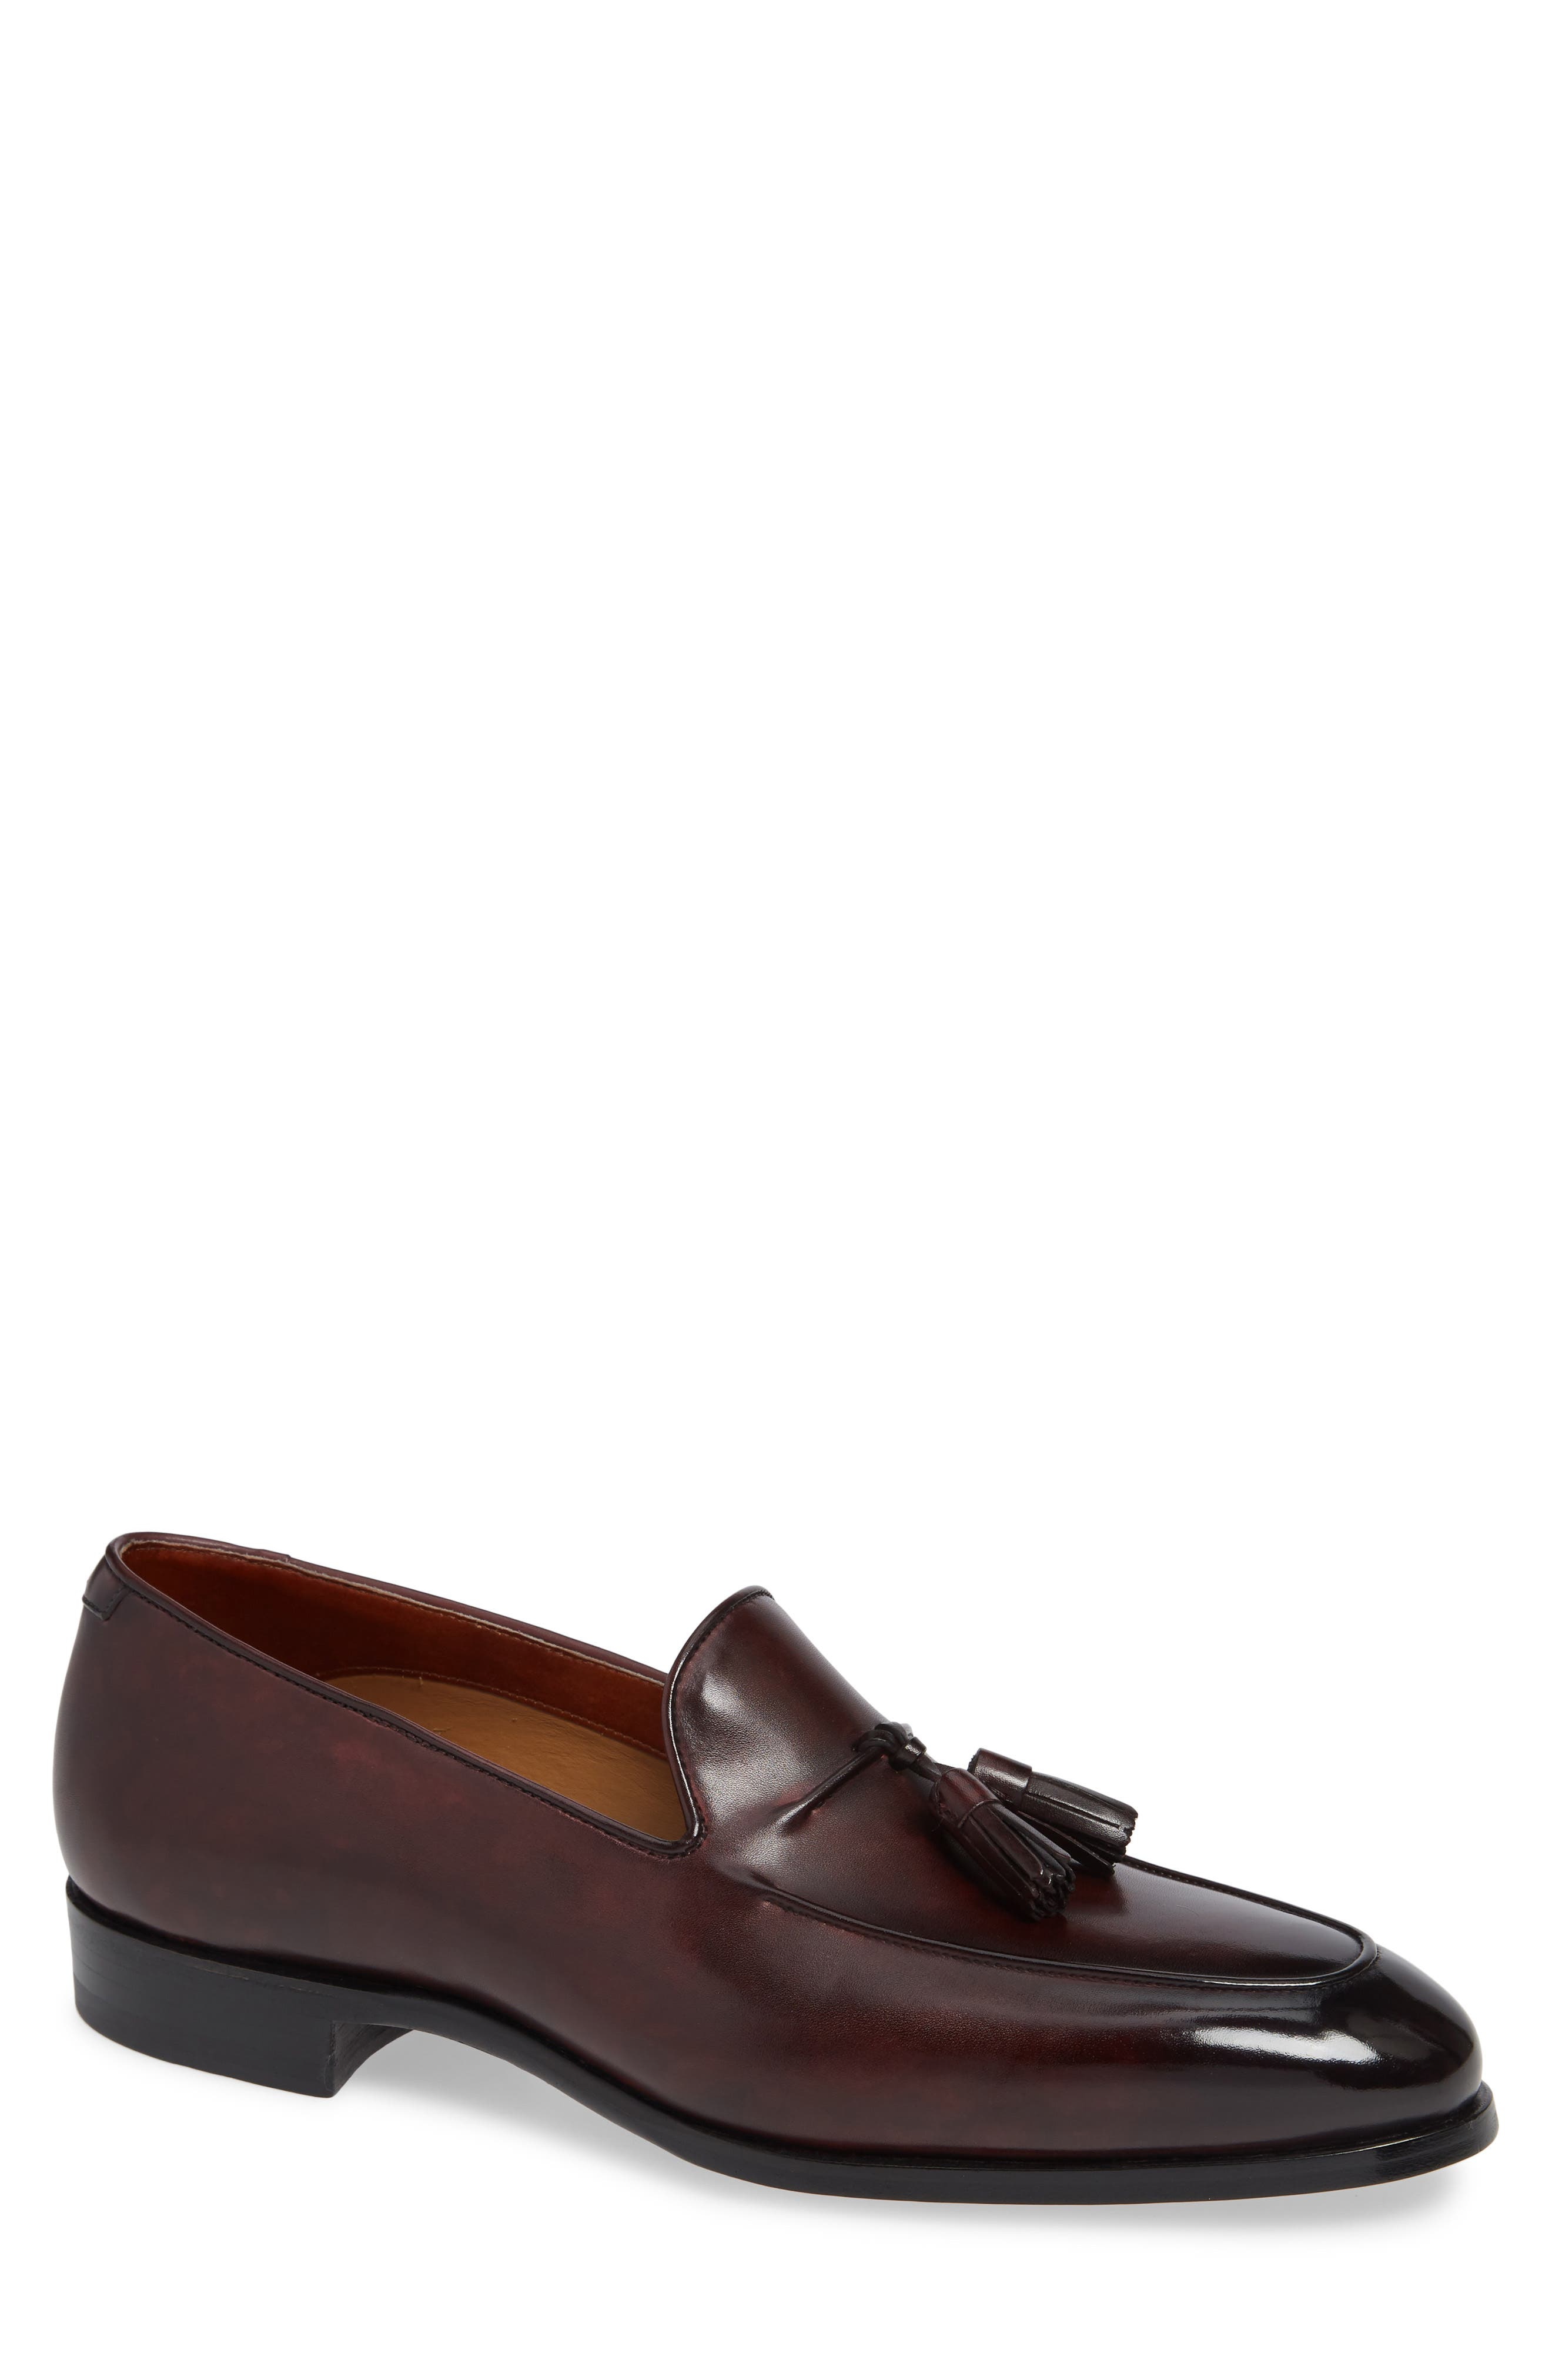 Broadway Tassel Loafer,                             Main thumbnail 1, color,                             BURGUNDY LEATHER